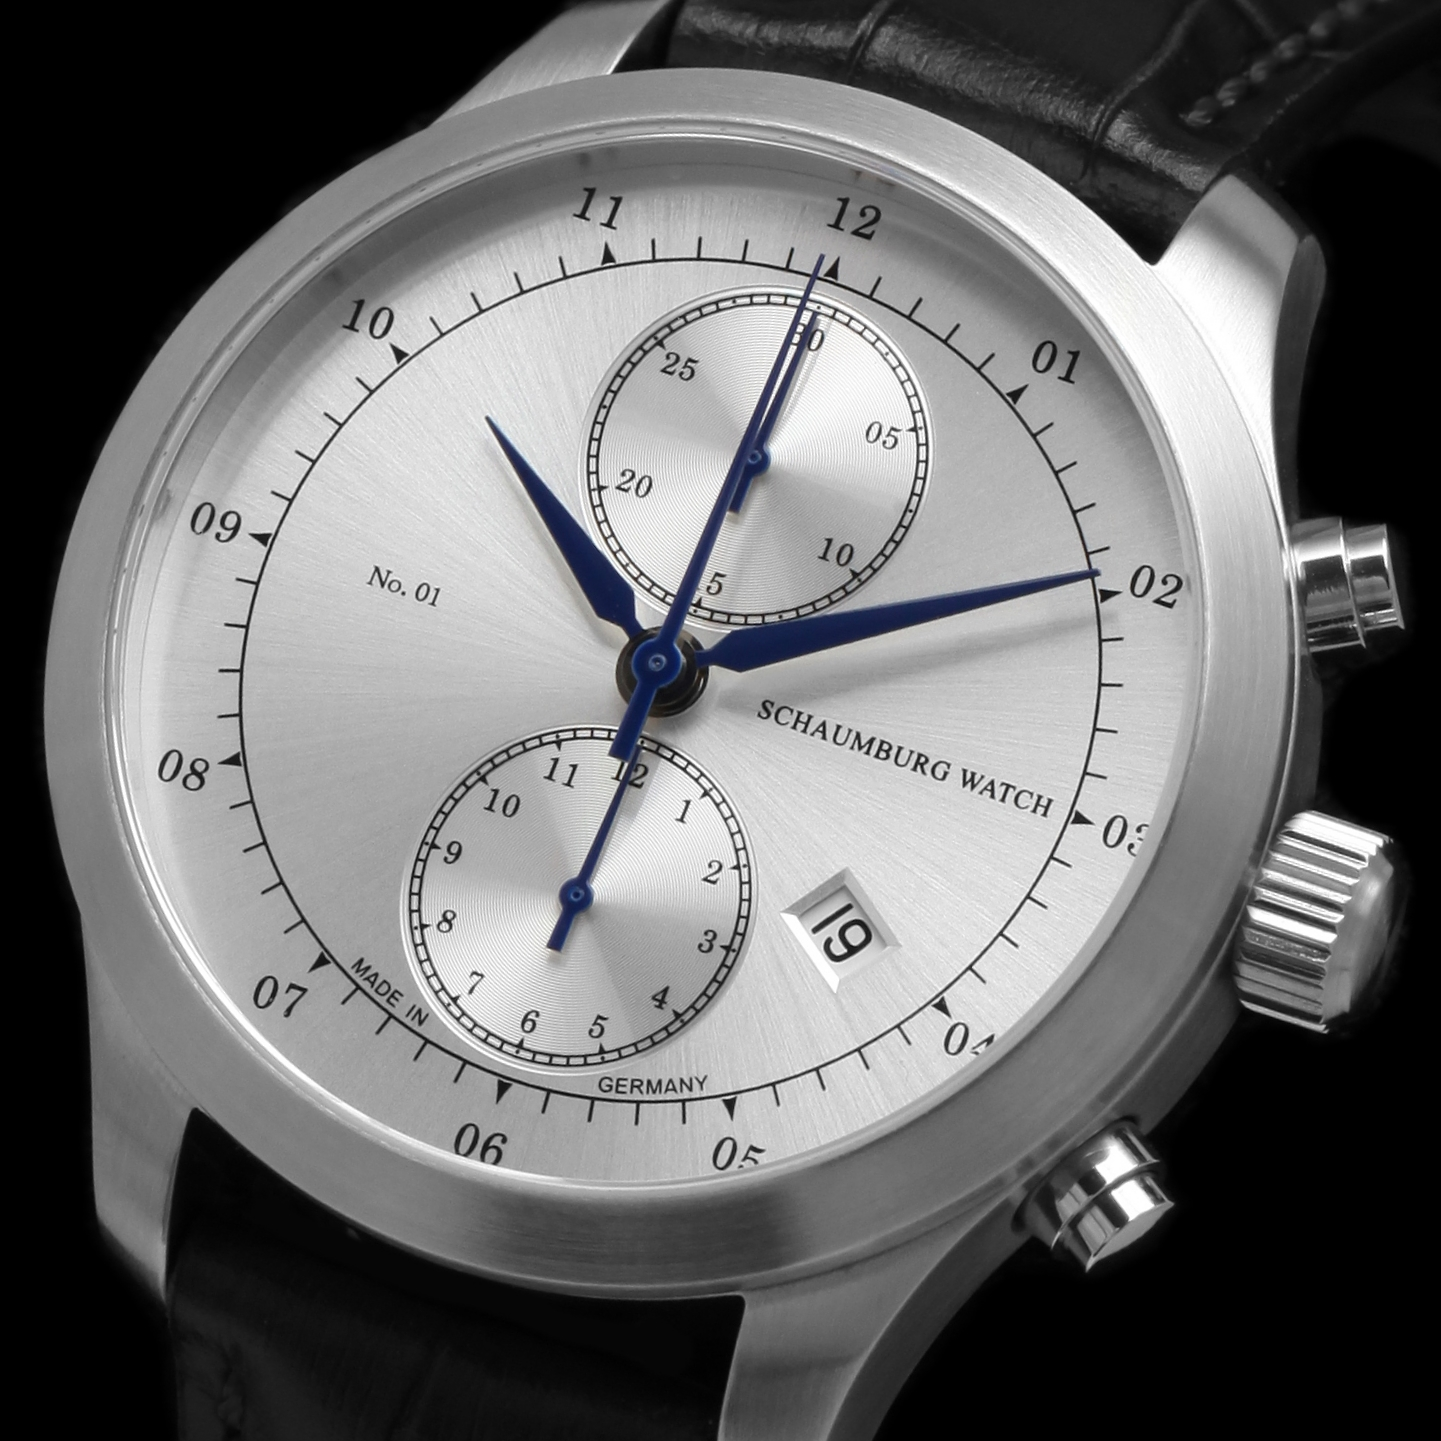 Schaumburg Watch Chronograph No.01